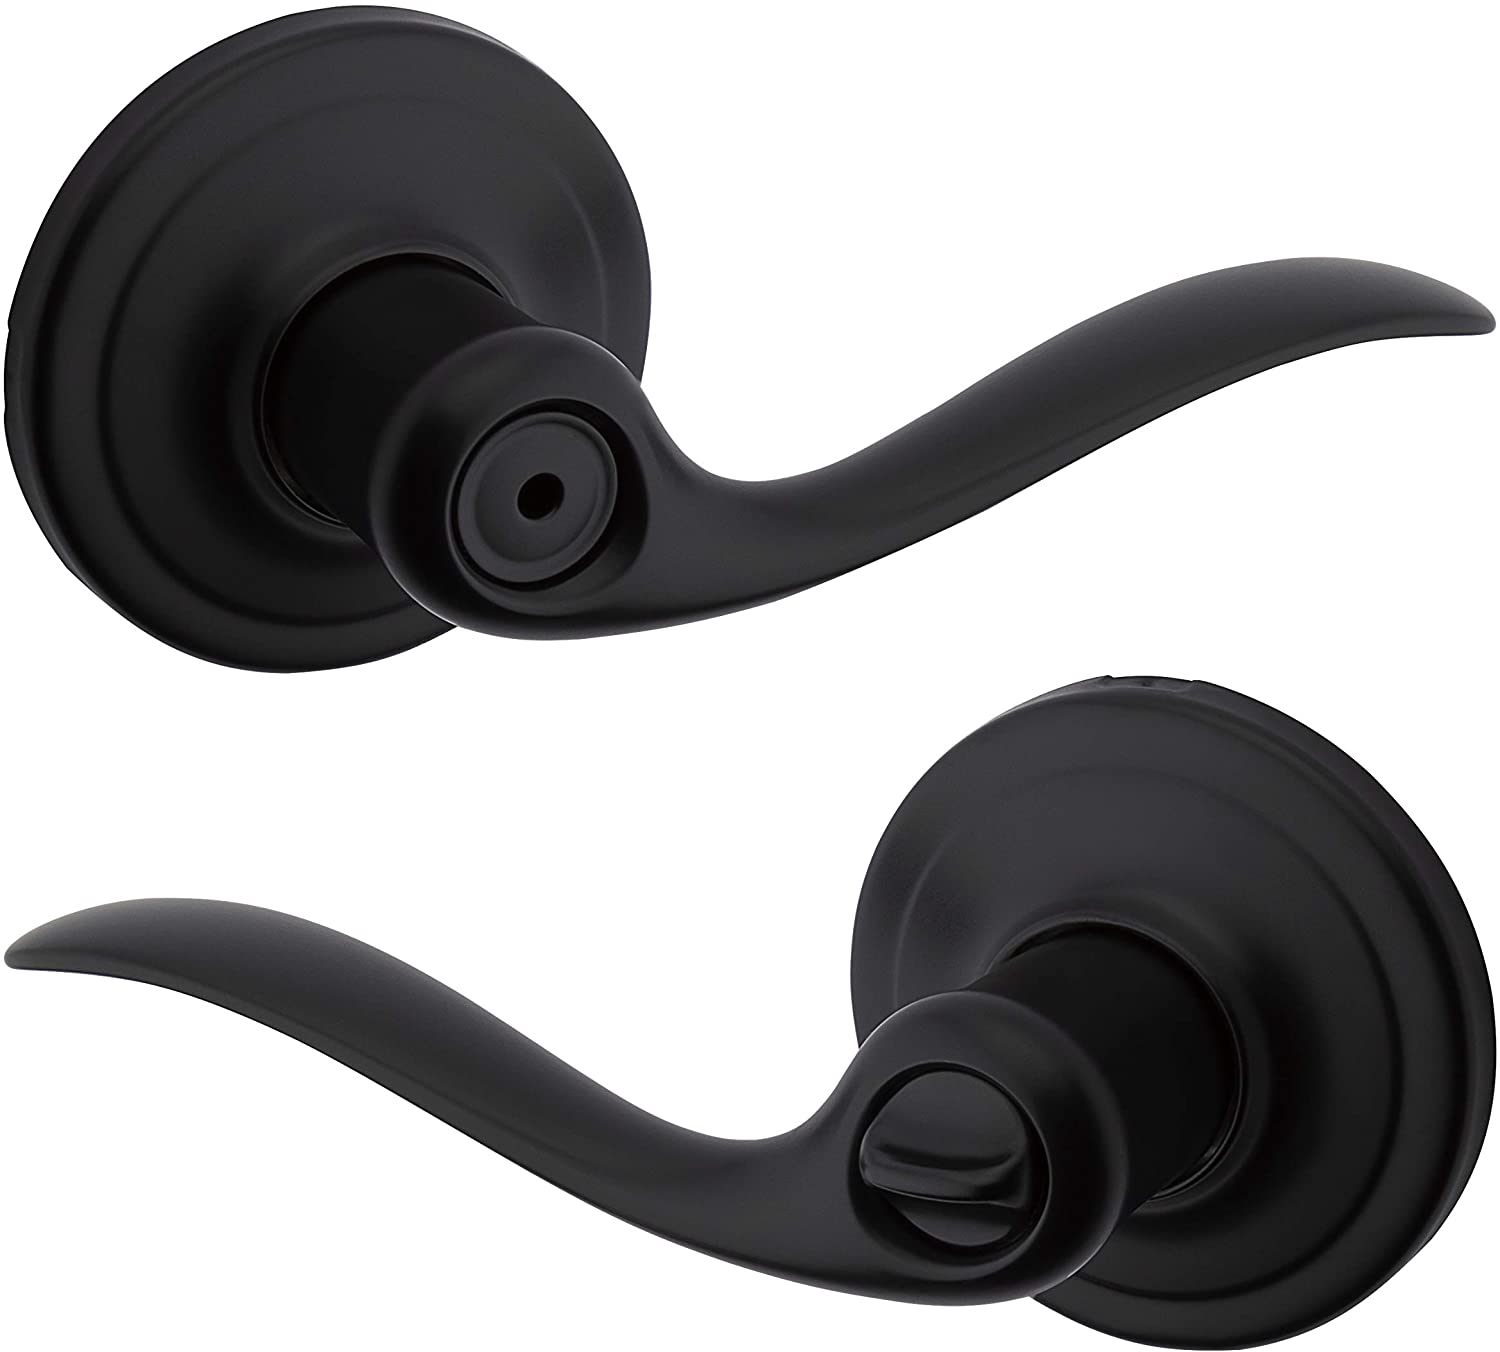 Kwikset 97300-860 Tustin Door Handle Lever with Traditional Wave Design for Home Bedroom or Bathroom Privacy in Iron Black